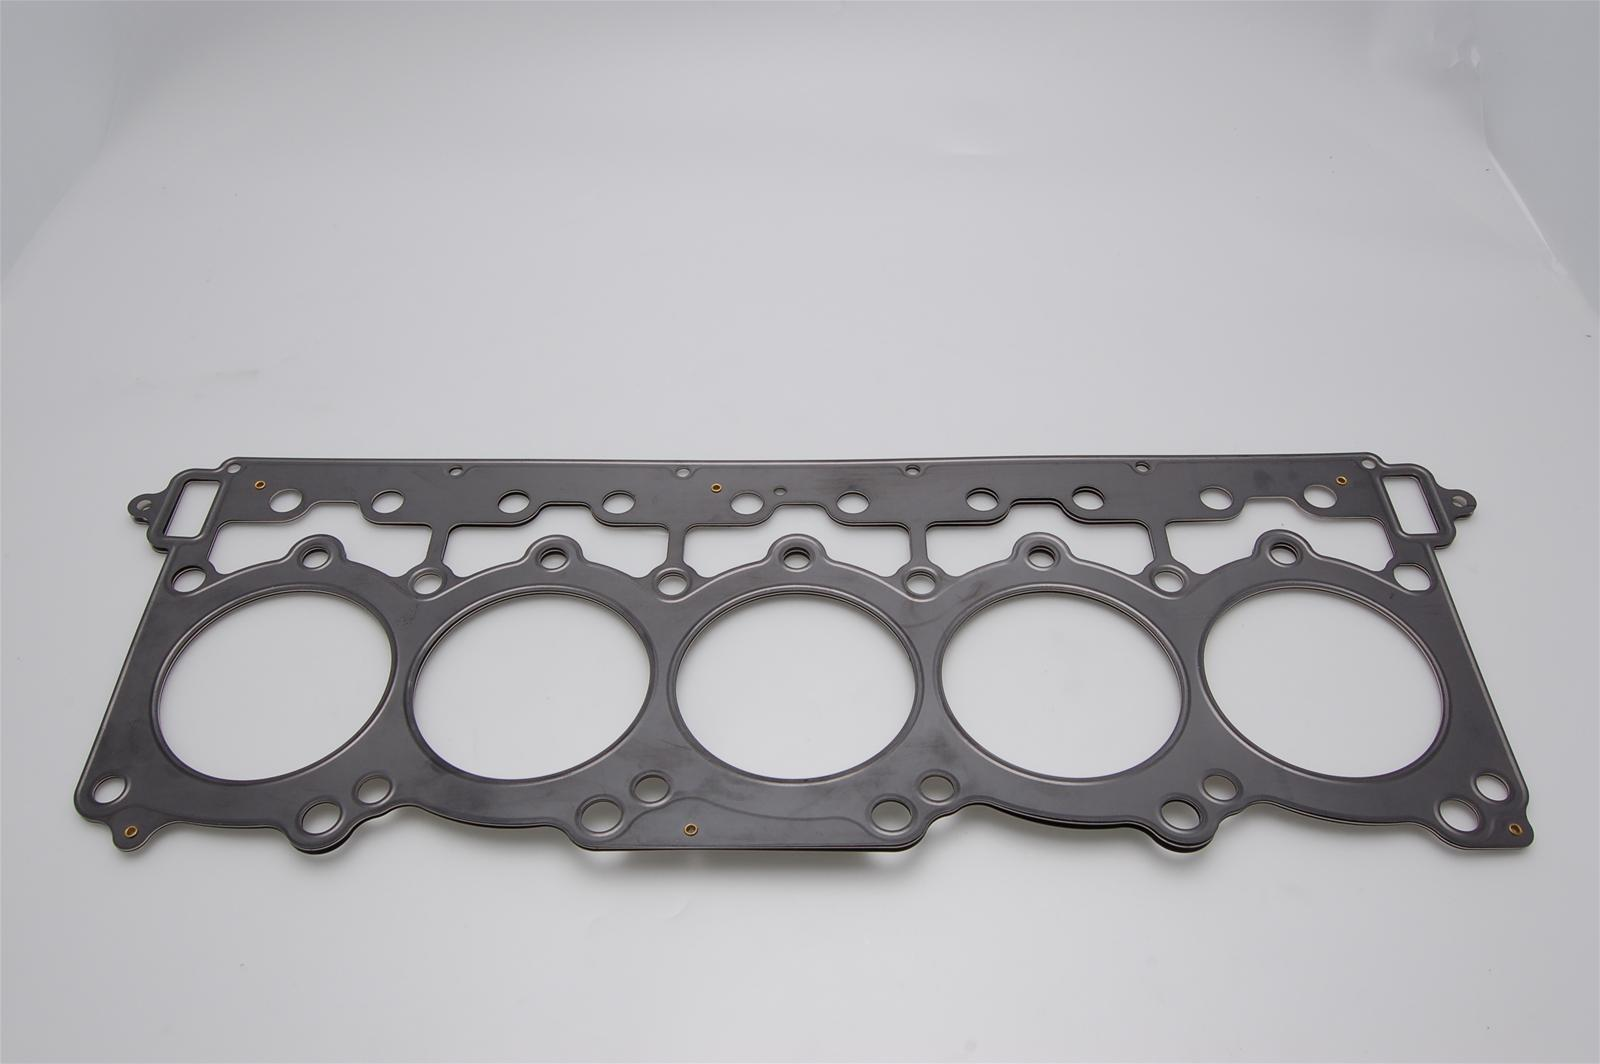 Cometic C5814-051 4.06 Bore x 0.051 Thick MLS Head Gasket